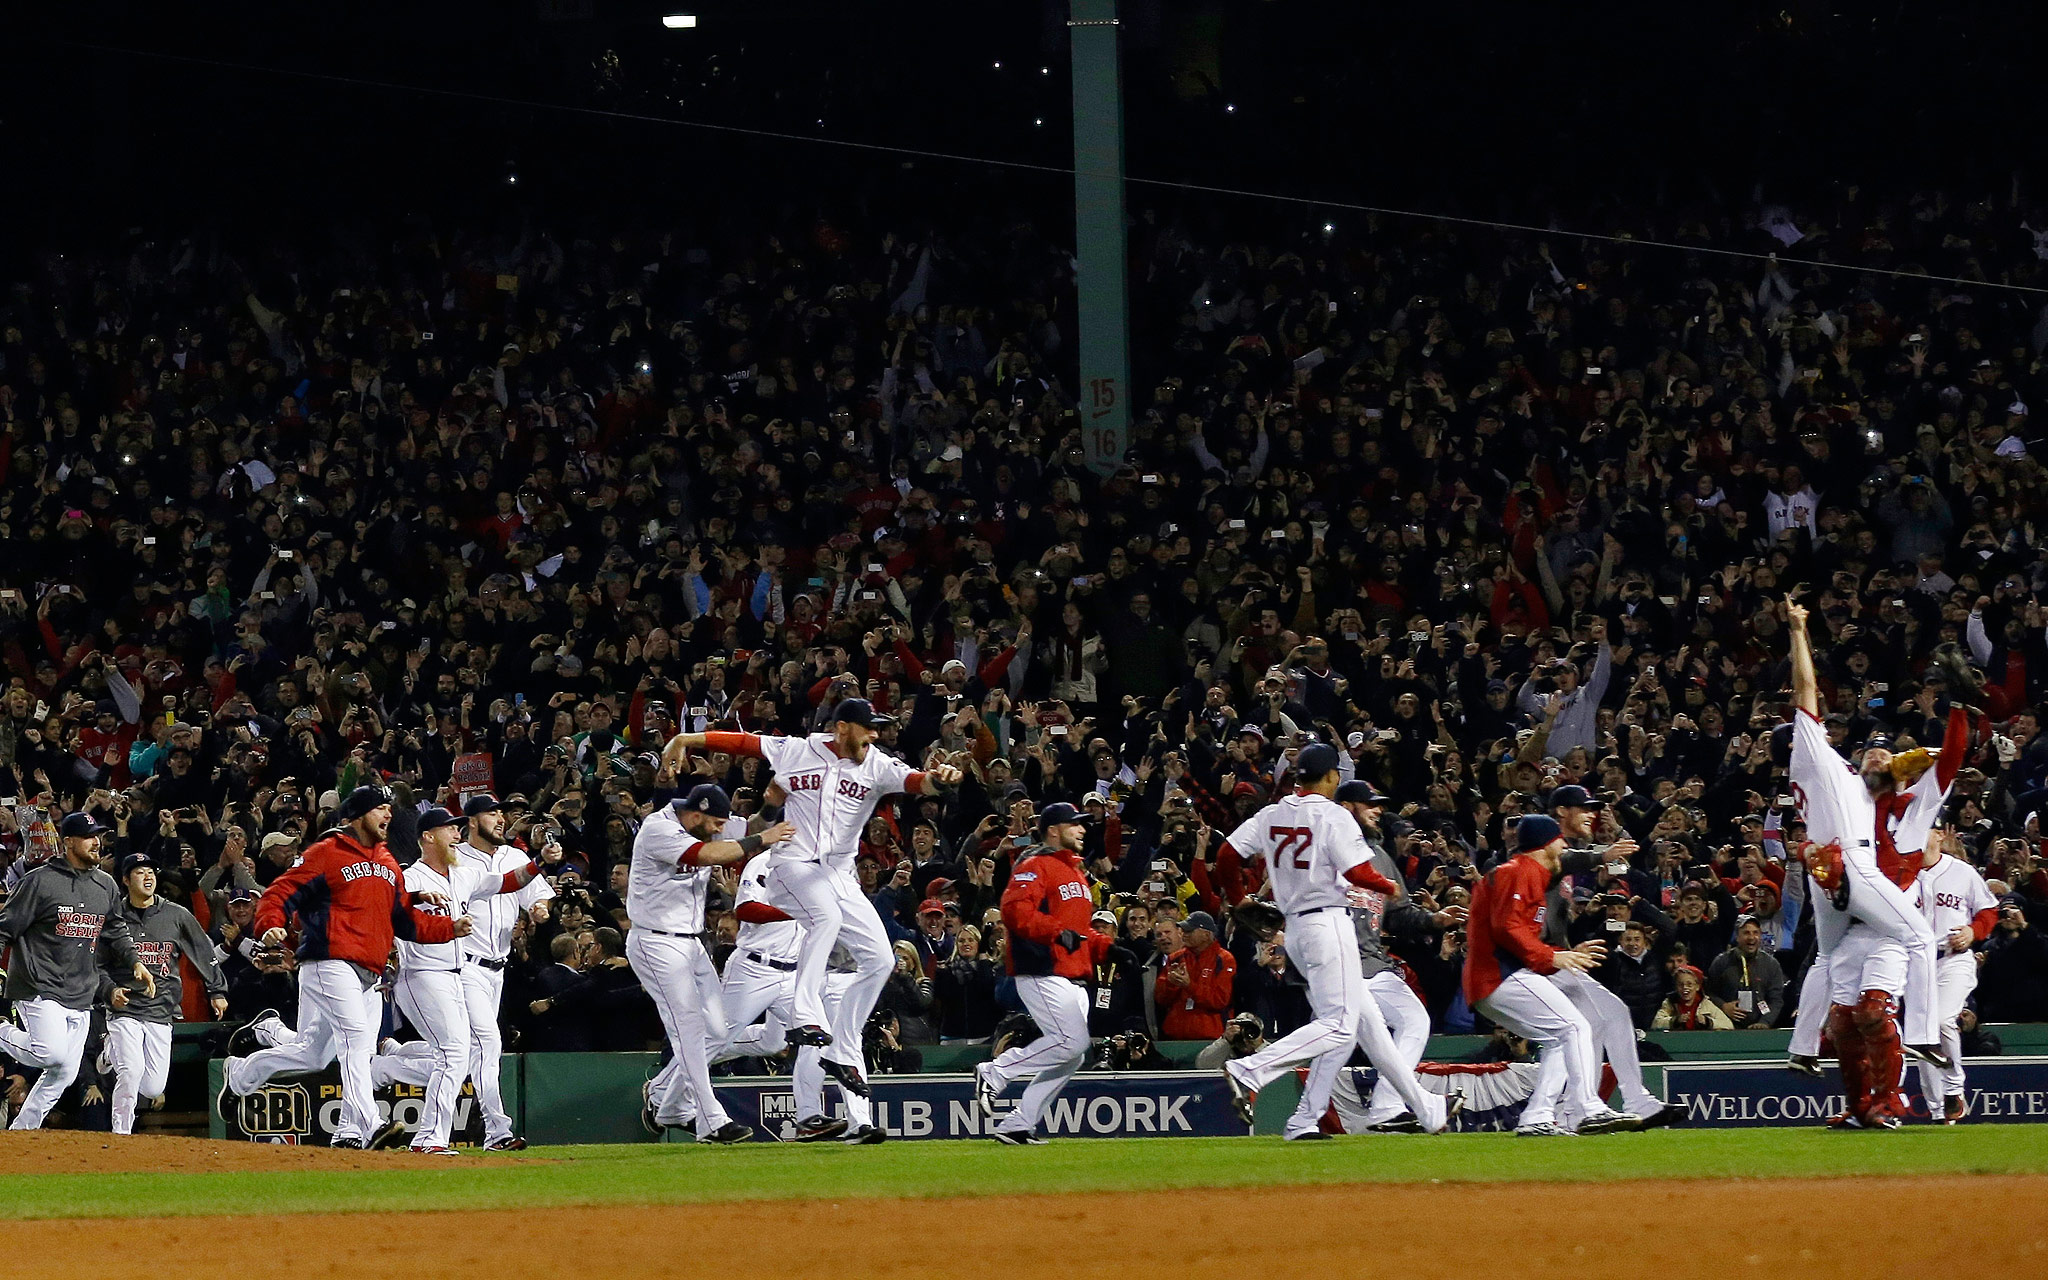 Storming the Mound